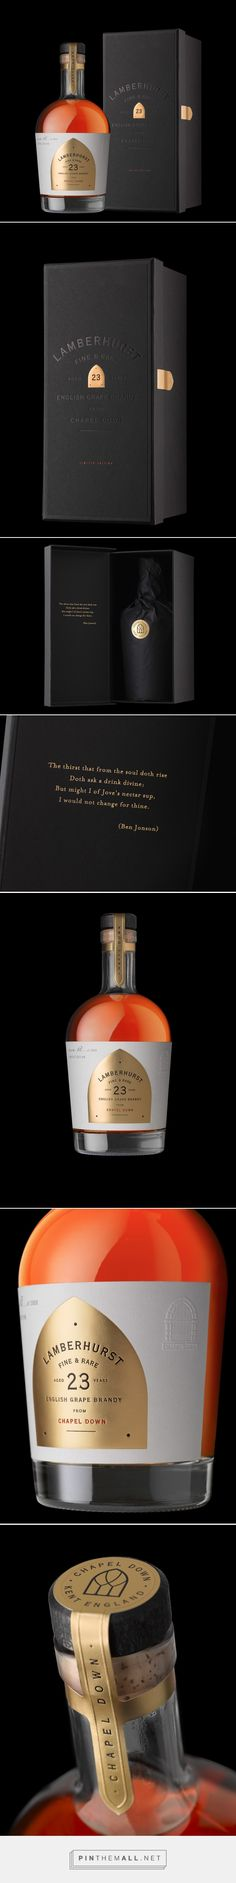 Lamberhurst - Packaging of the World - Creative Package Design Gallery…